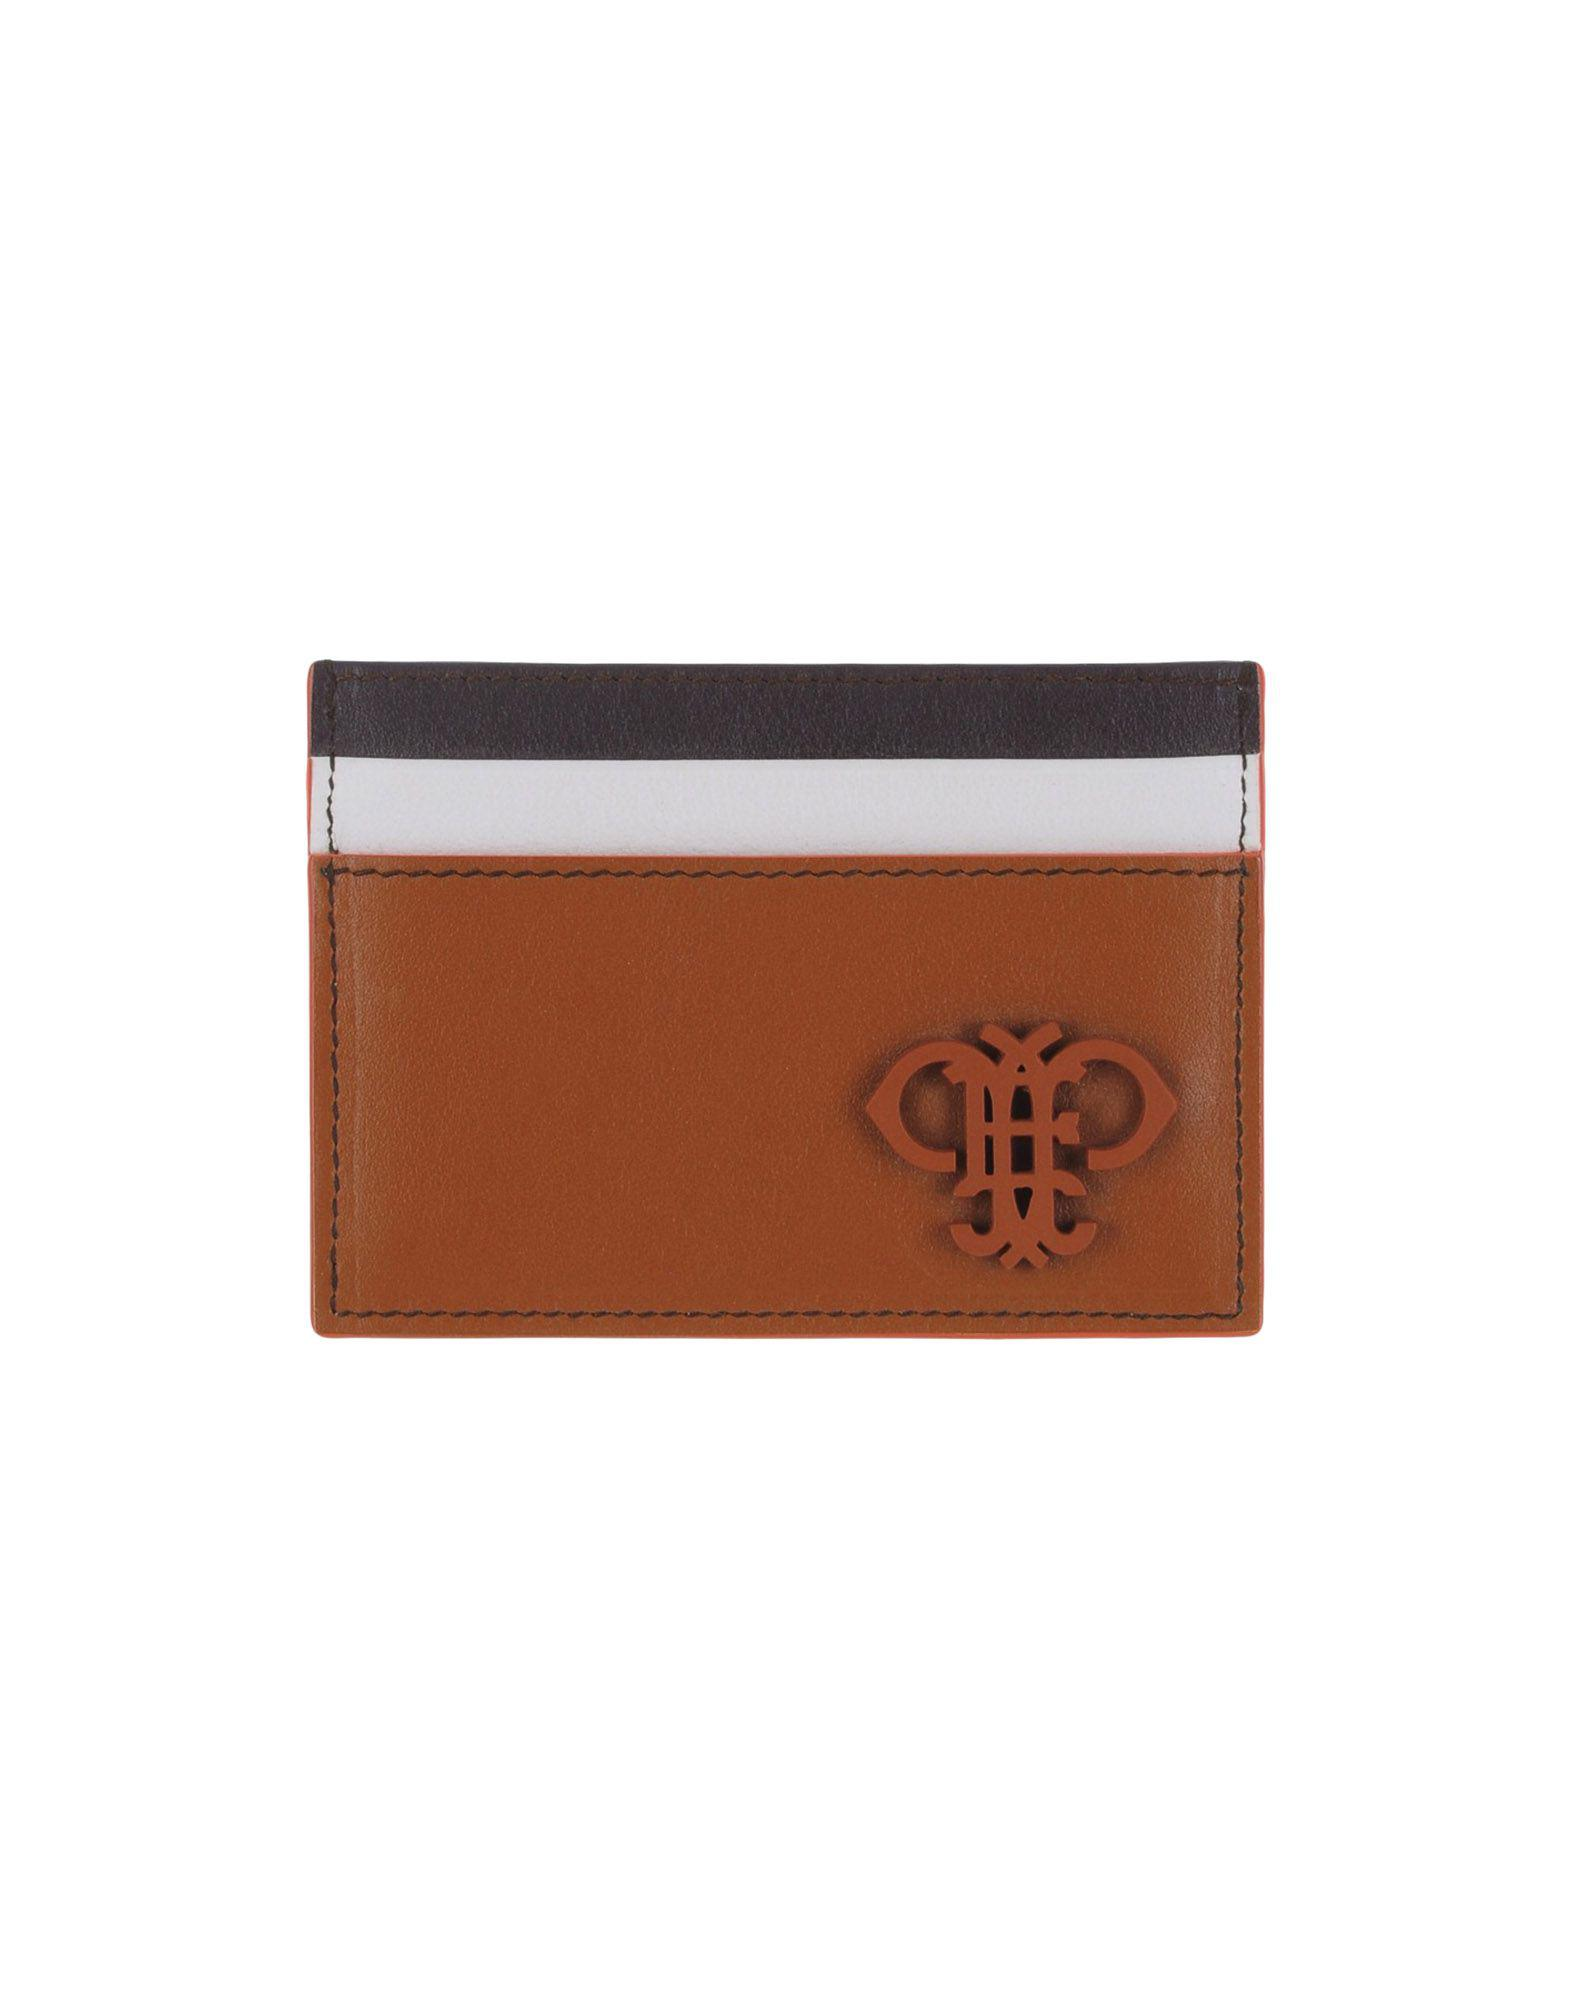 Small Leather Goods - Document holders Emilio Pucci 7OdFdBDF4